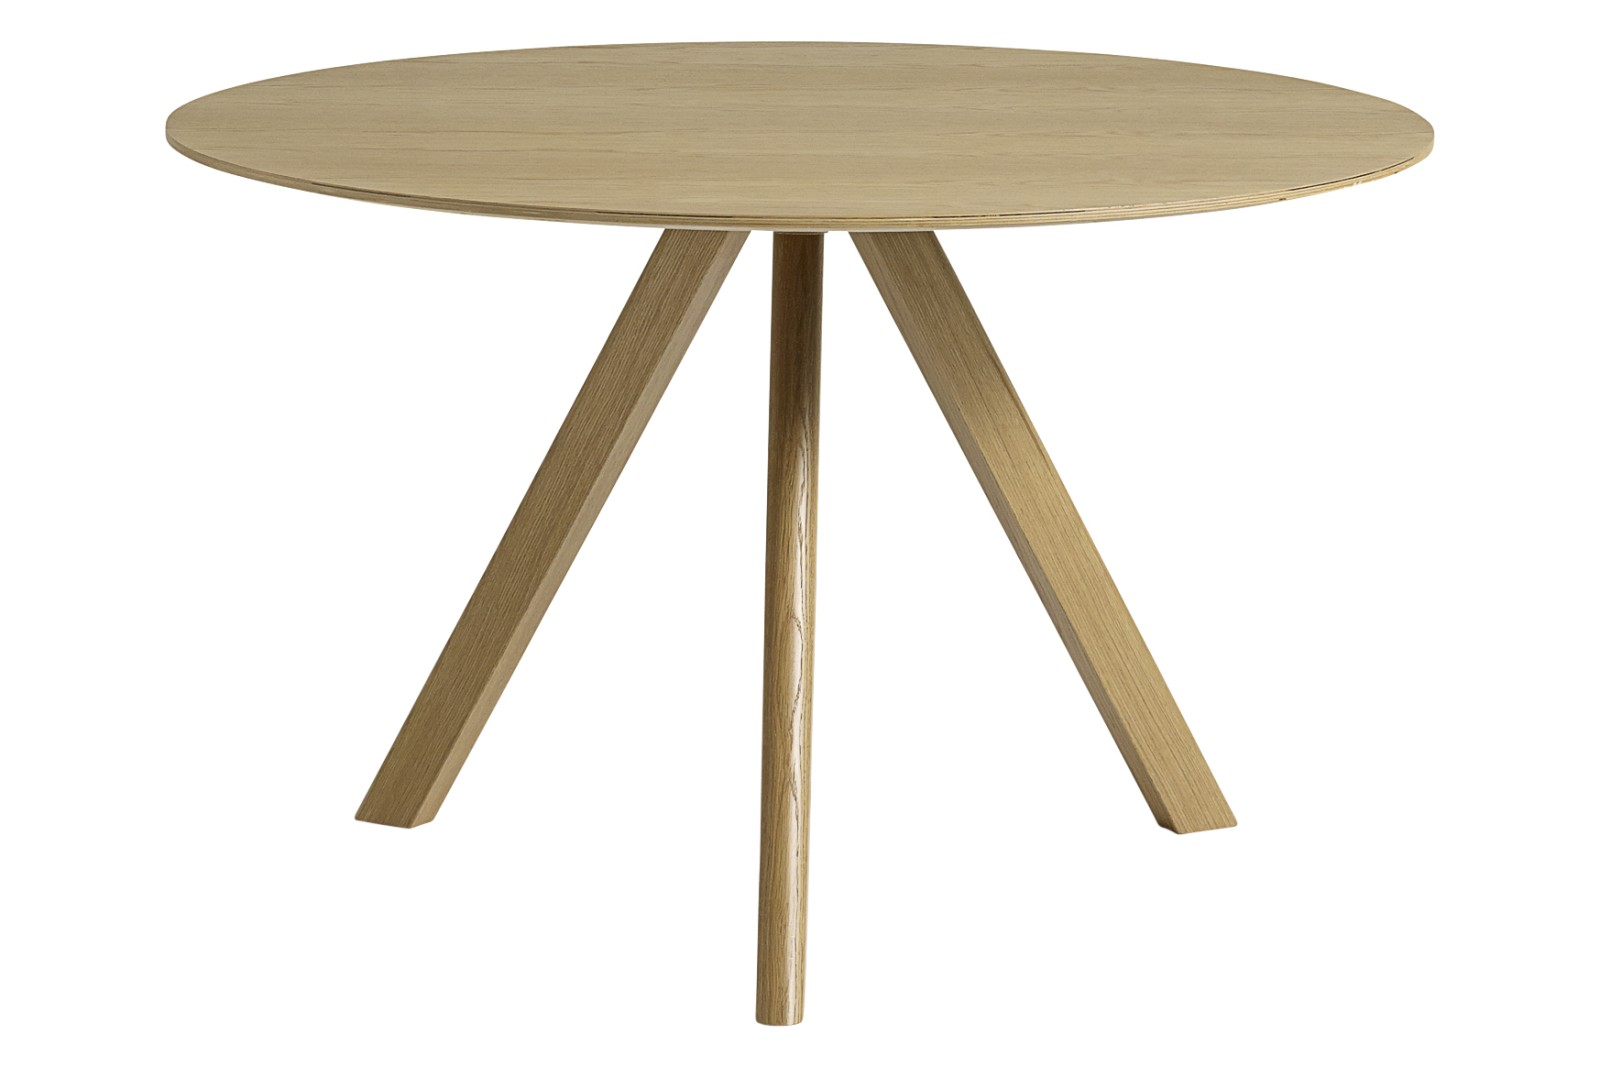 CPH 20 Round Dining Table Wood Clear Oak, 120cm